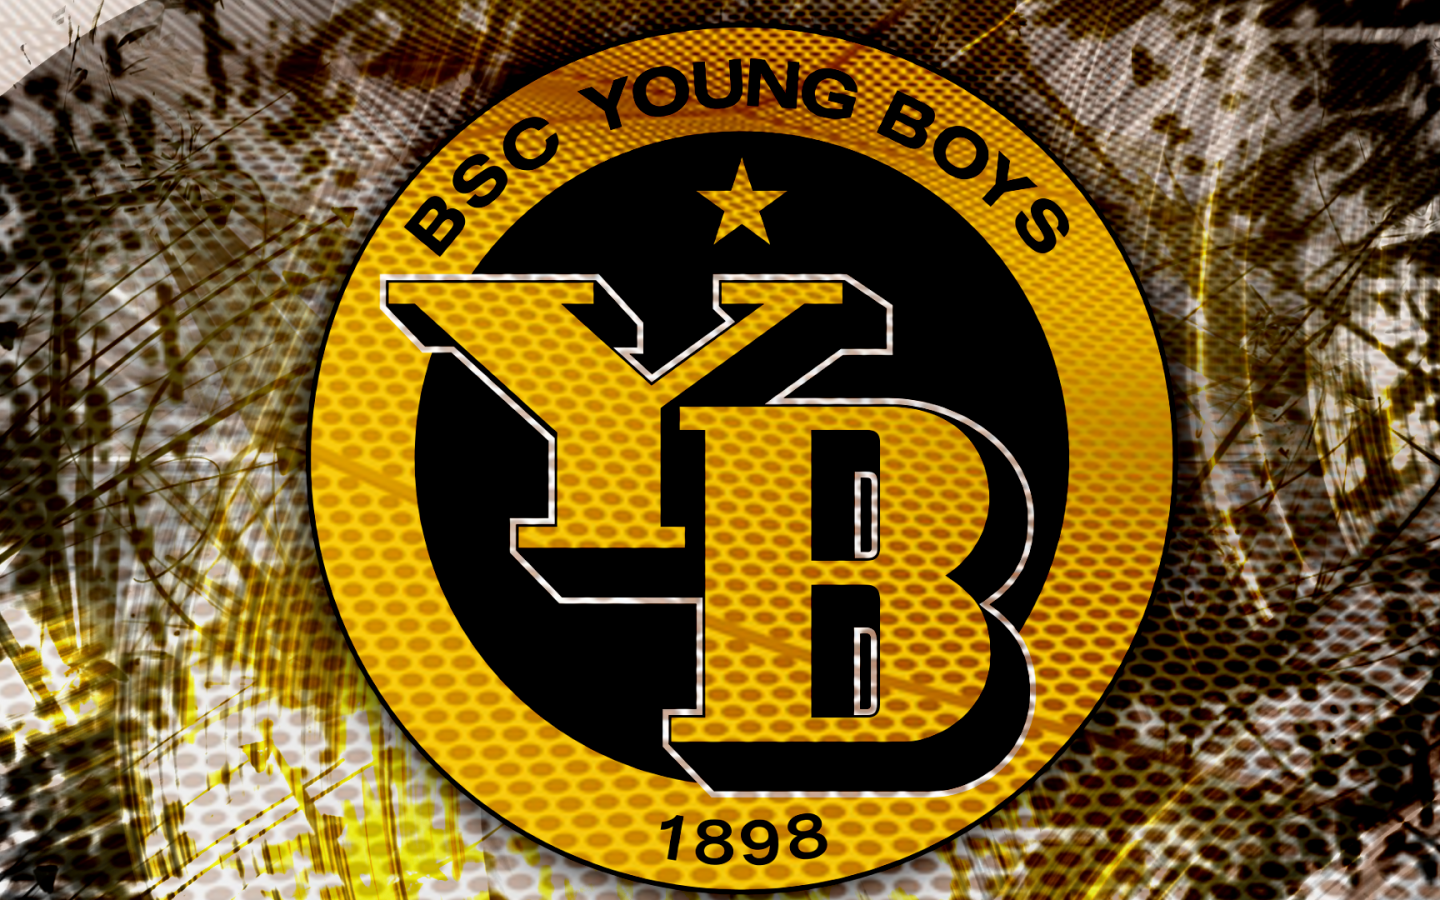 1440x900 - BSC Young Boys Wallpapers 14